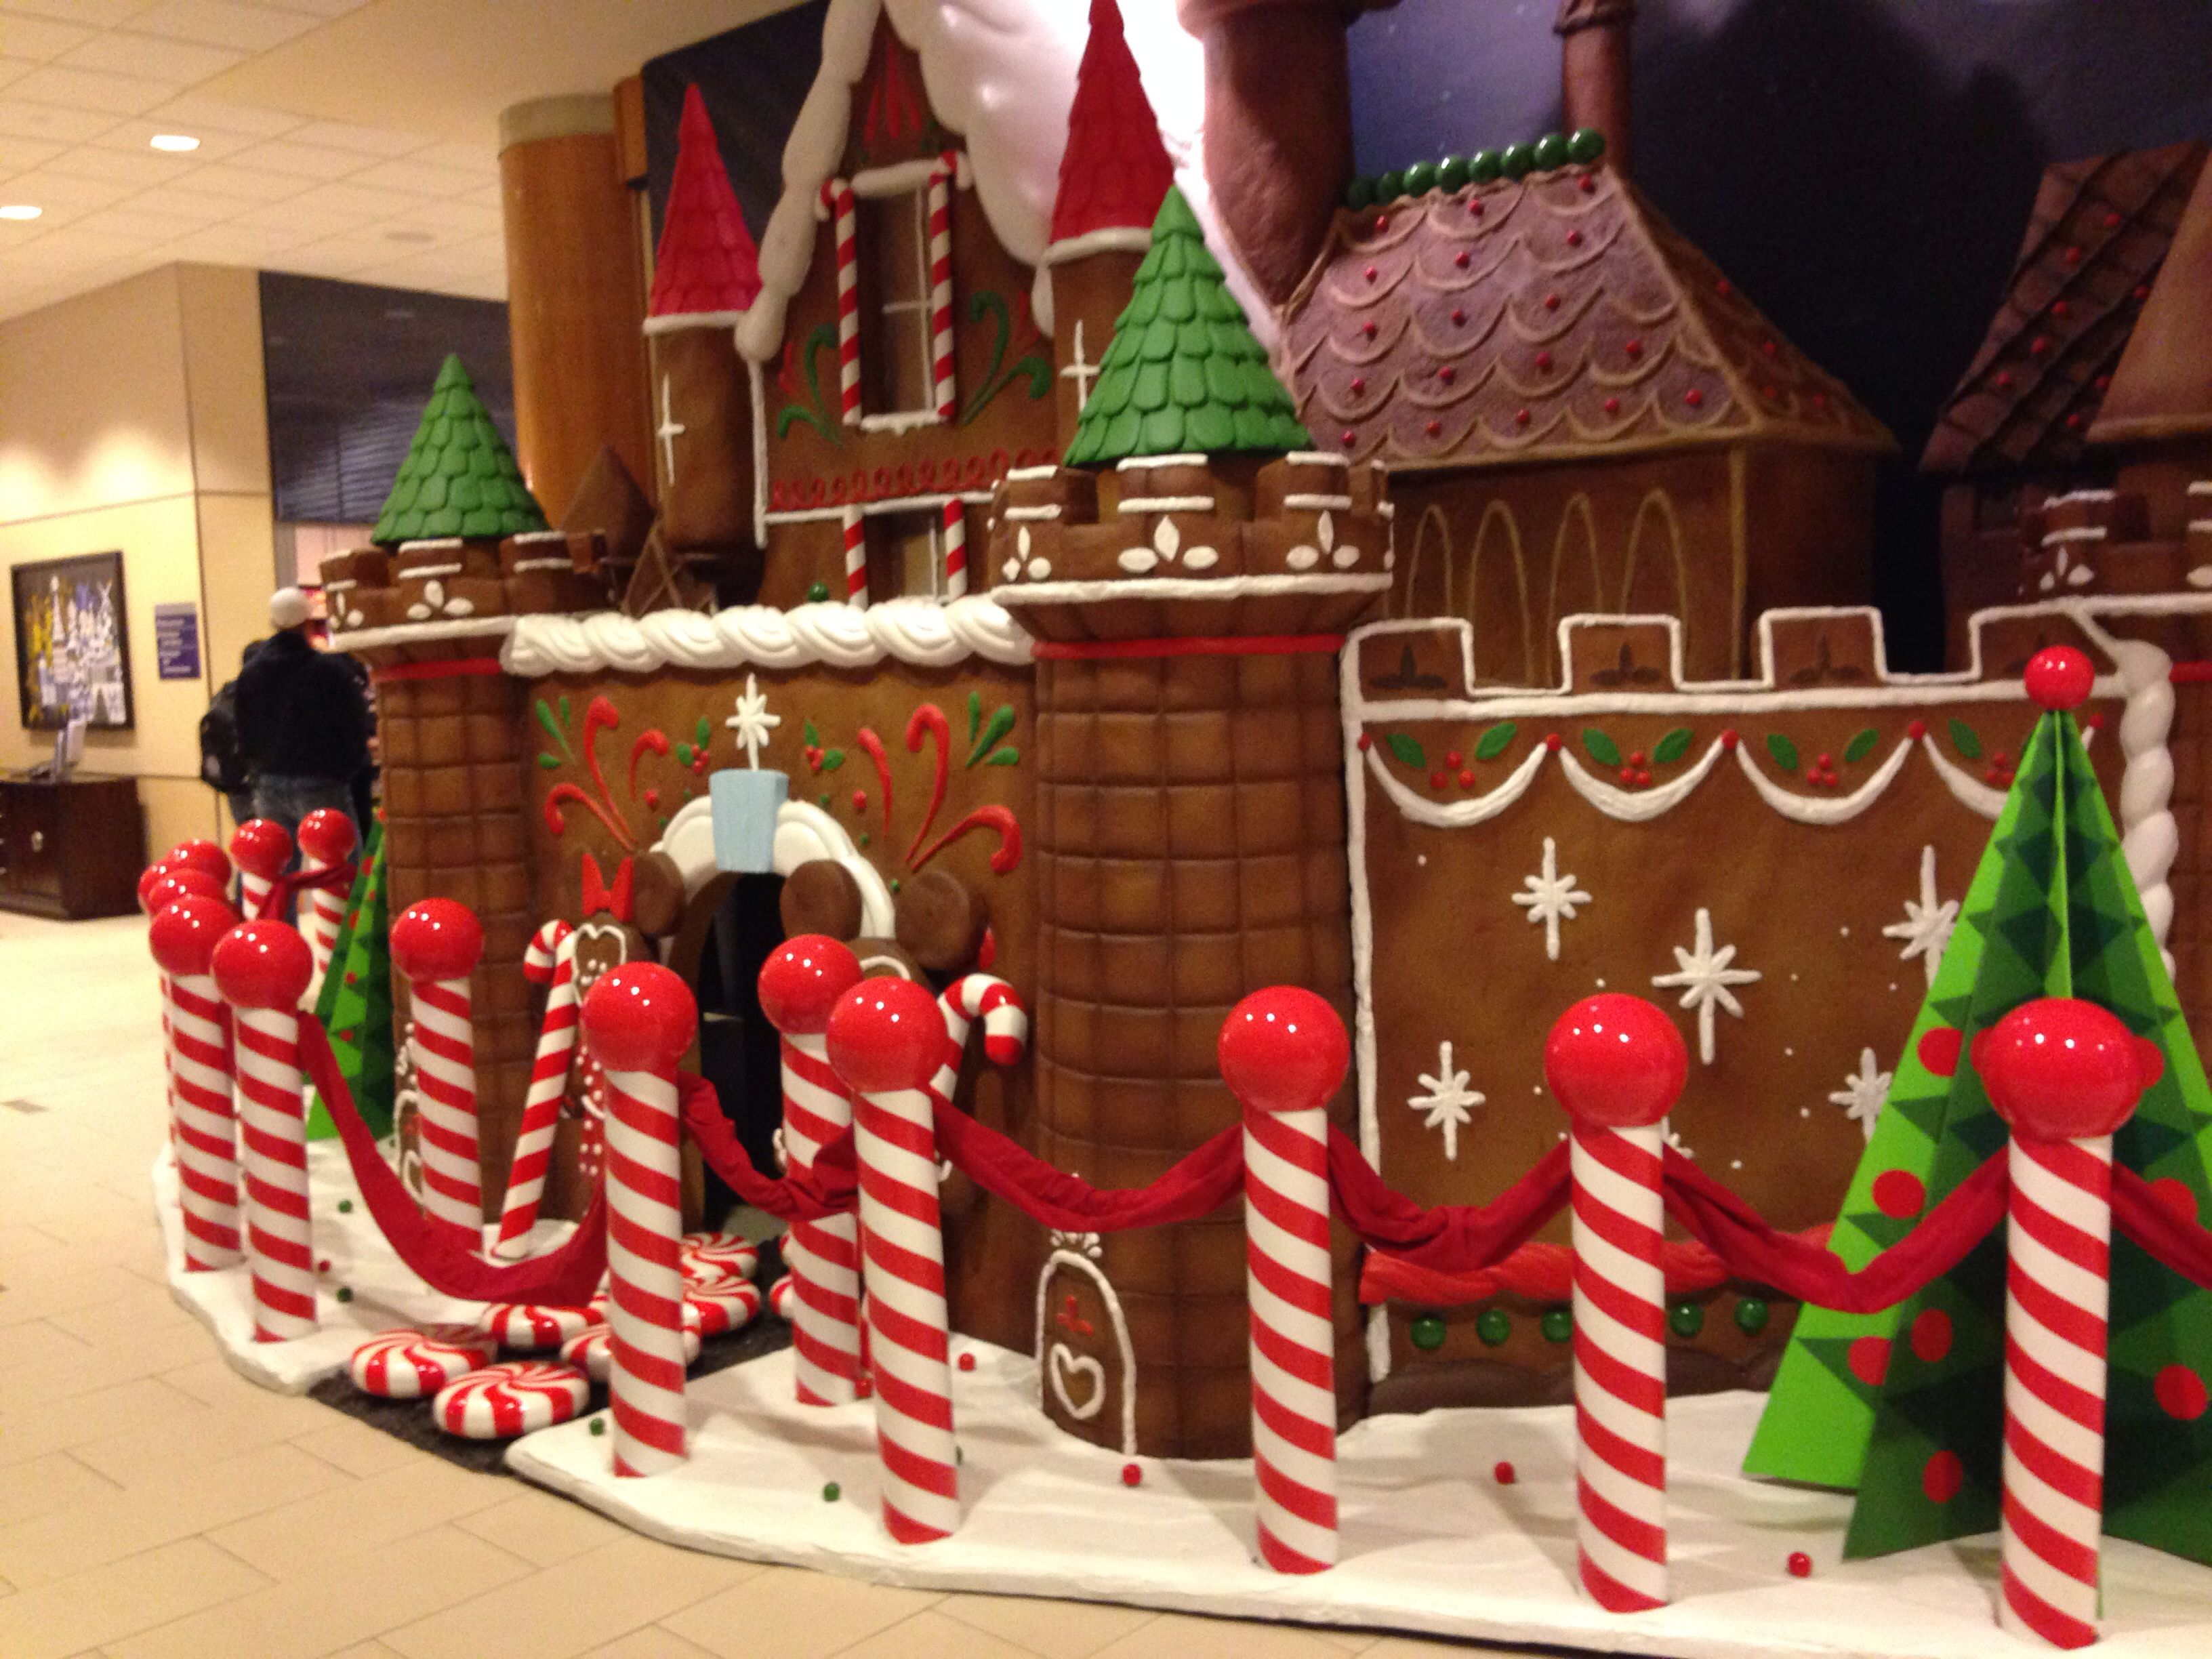 Life Size Gingerbread House In The Lobby Of The Disneyland Hotel Office Christmas Decorations Christmas Door Decorations Christmas Decorations